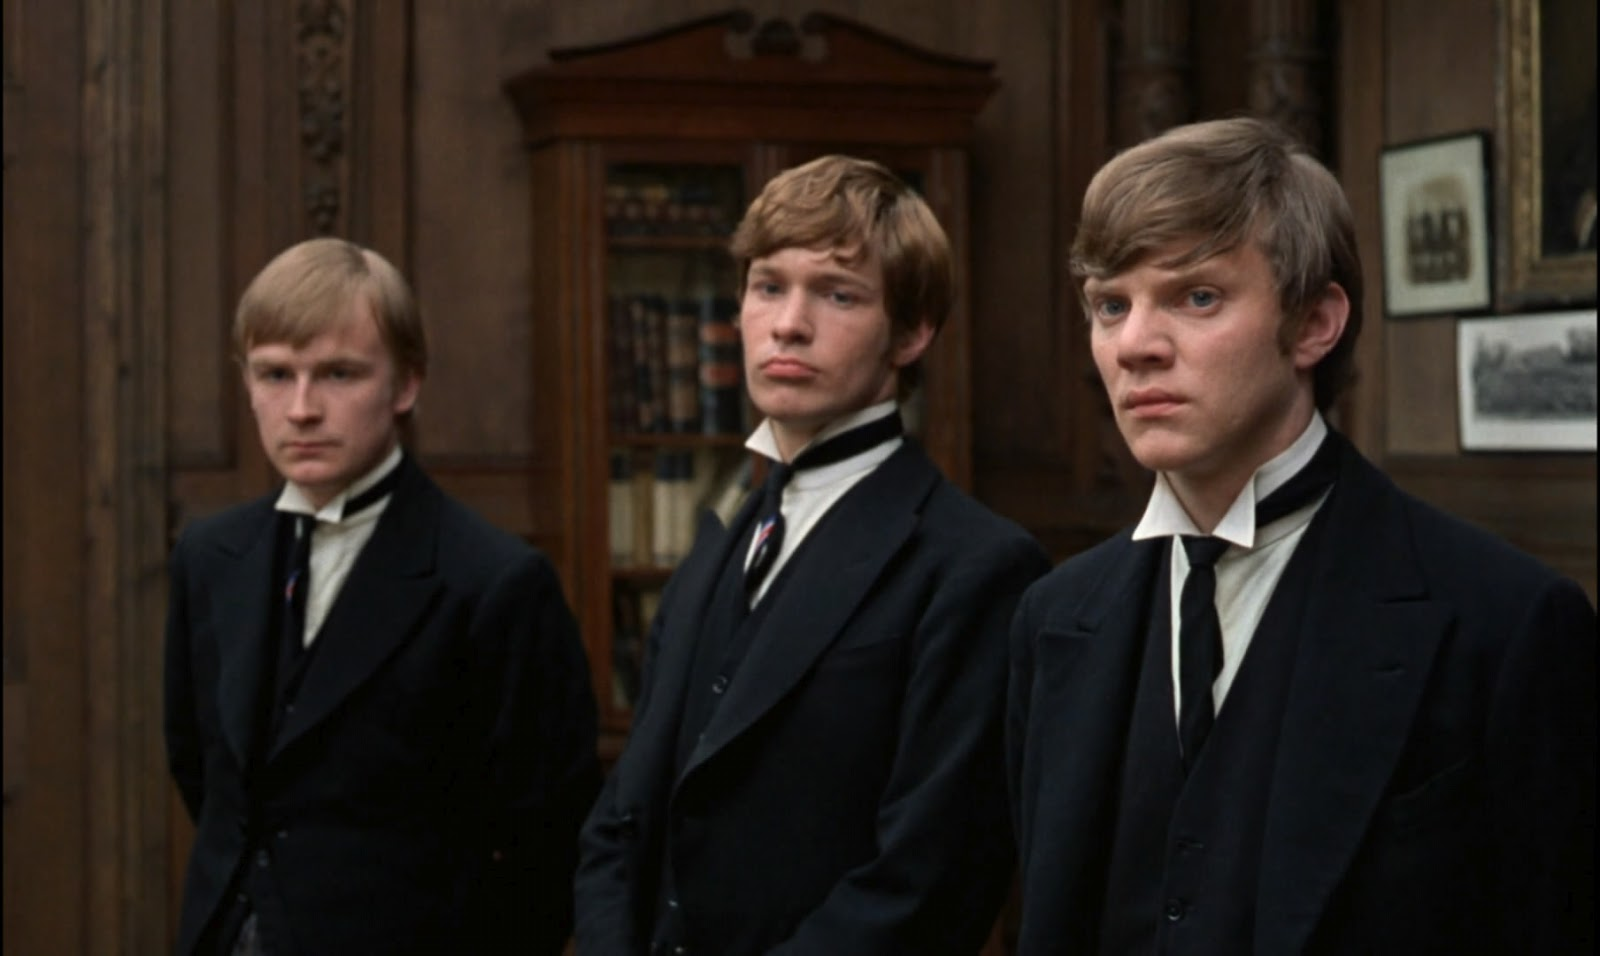 Malcolm McDowell - Boredom is Counterrevolutionary: The 1968 Youth Revolts of If... and Wild In The Streets